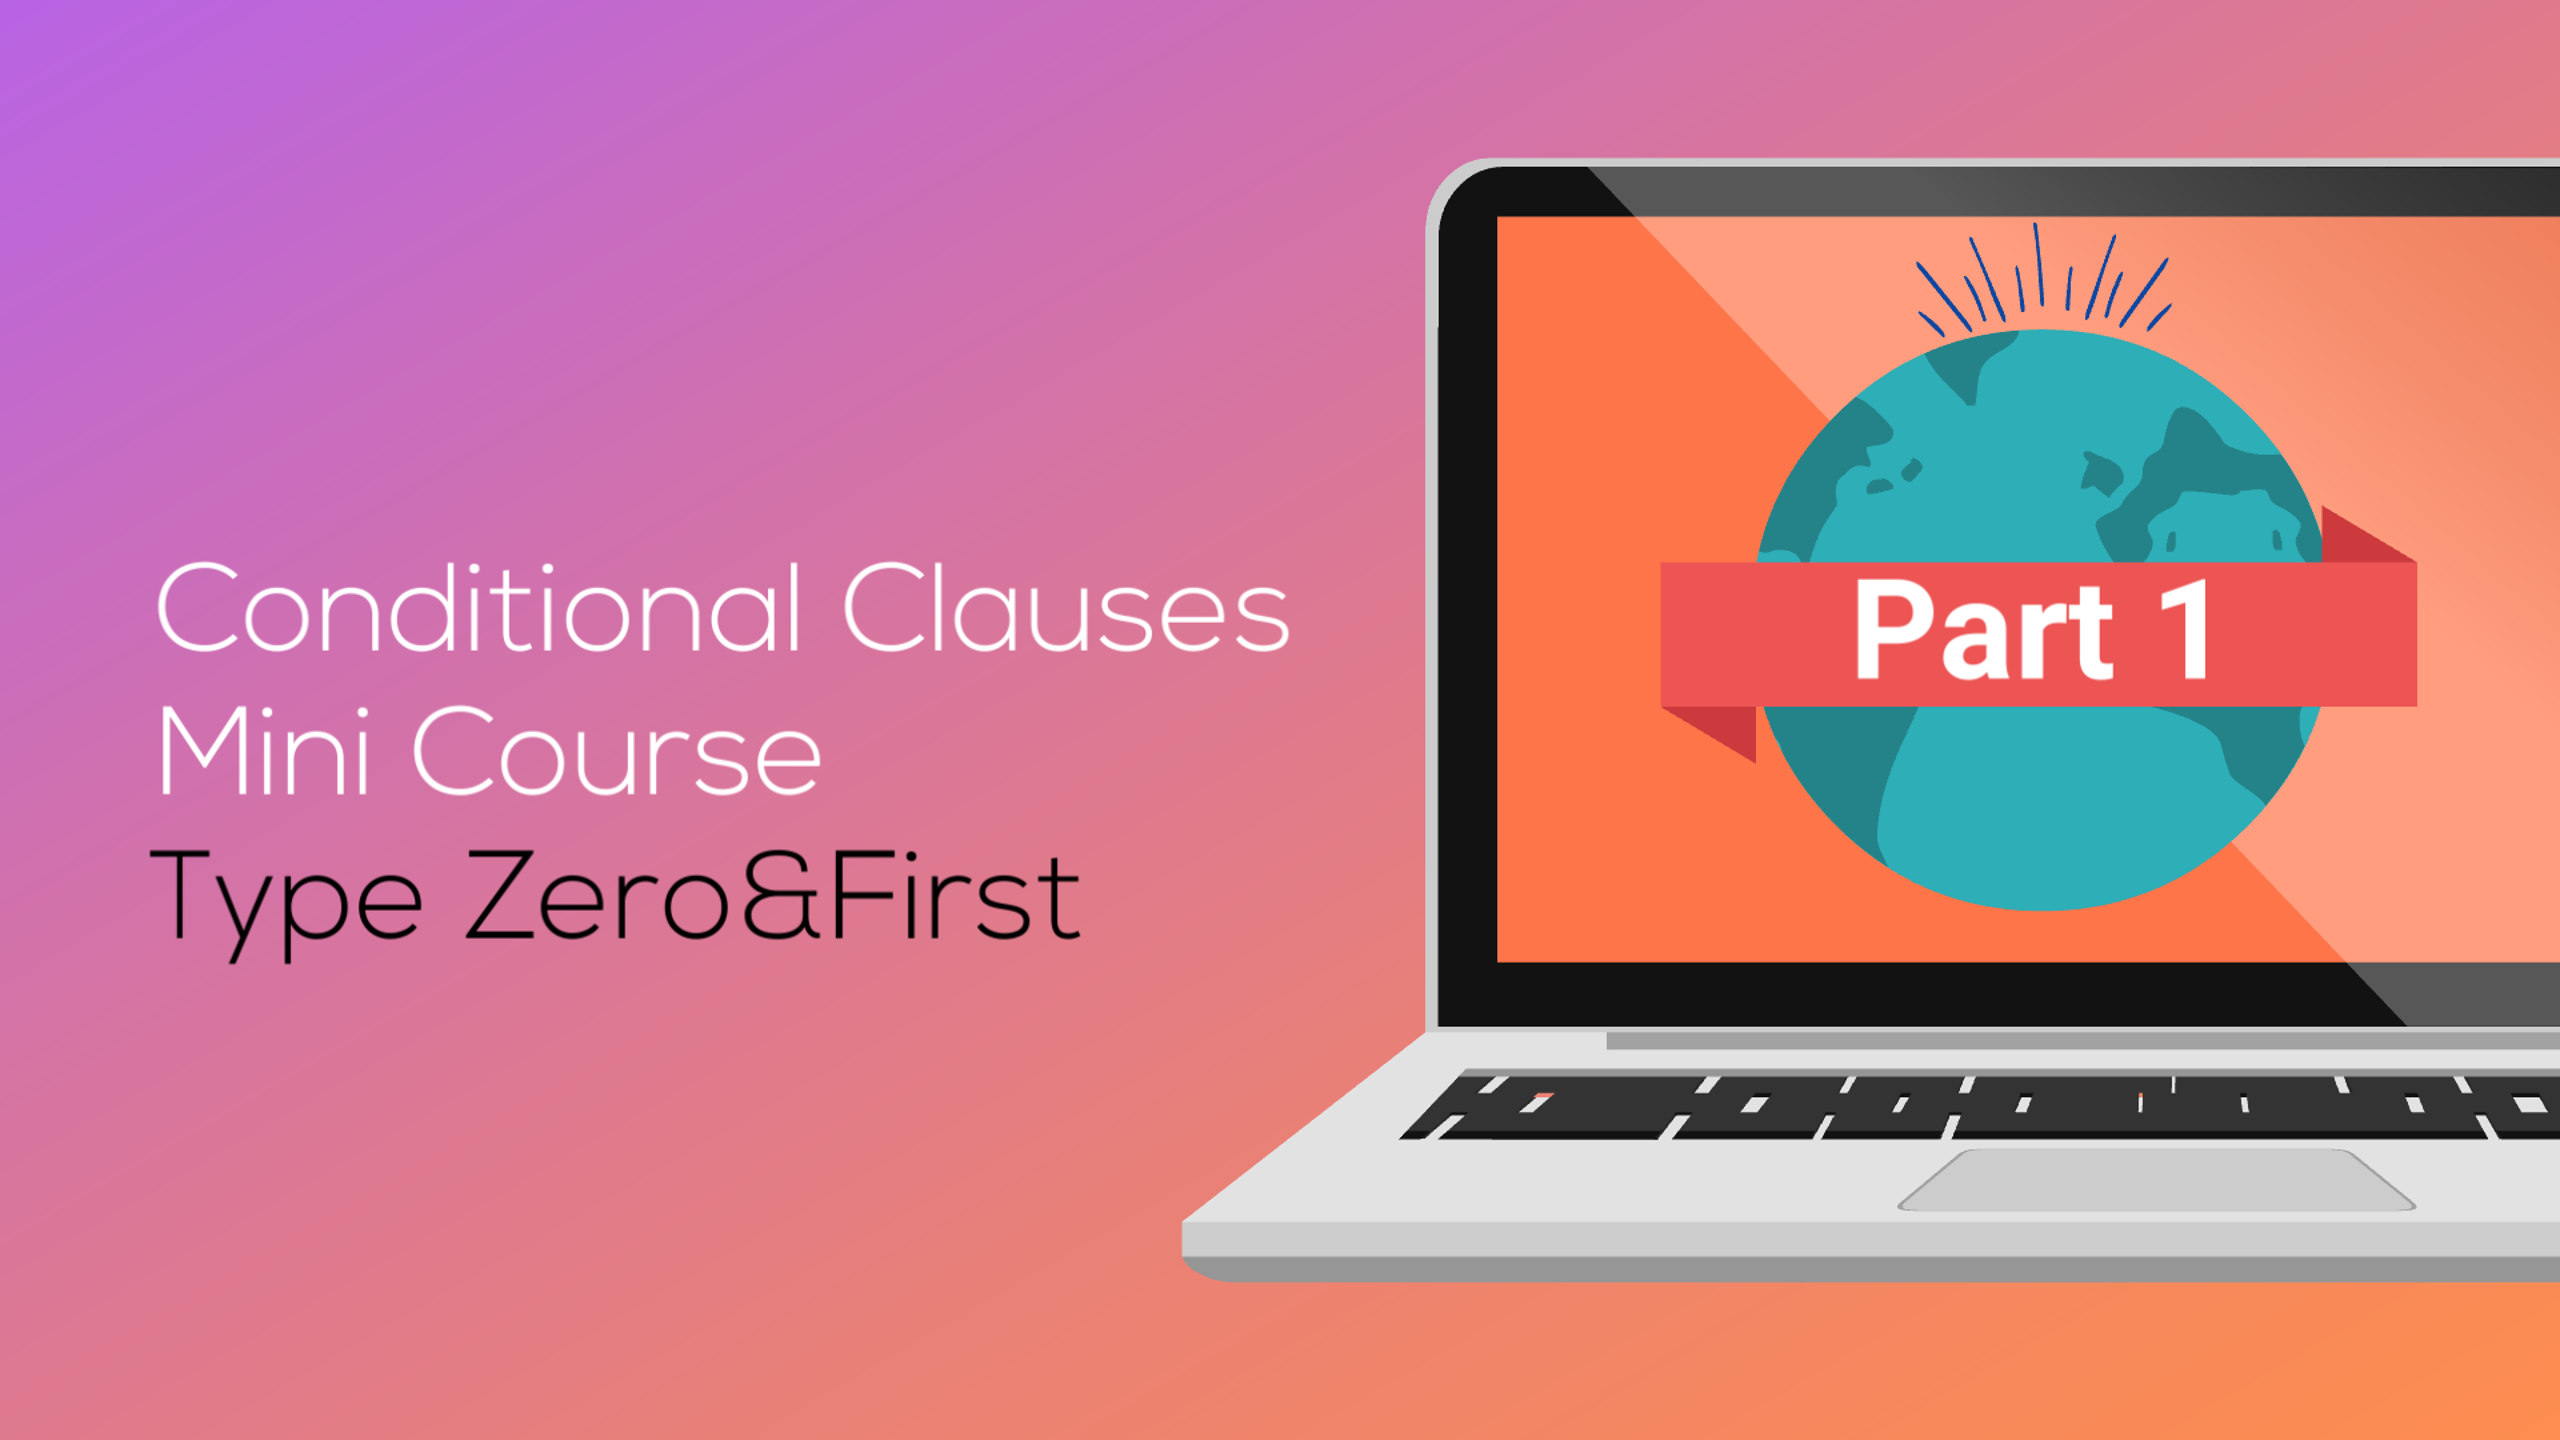 Conditional Clauses Mini Course Part 1